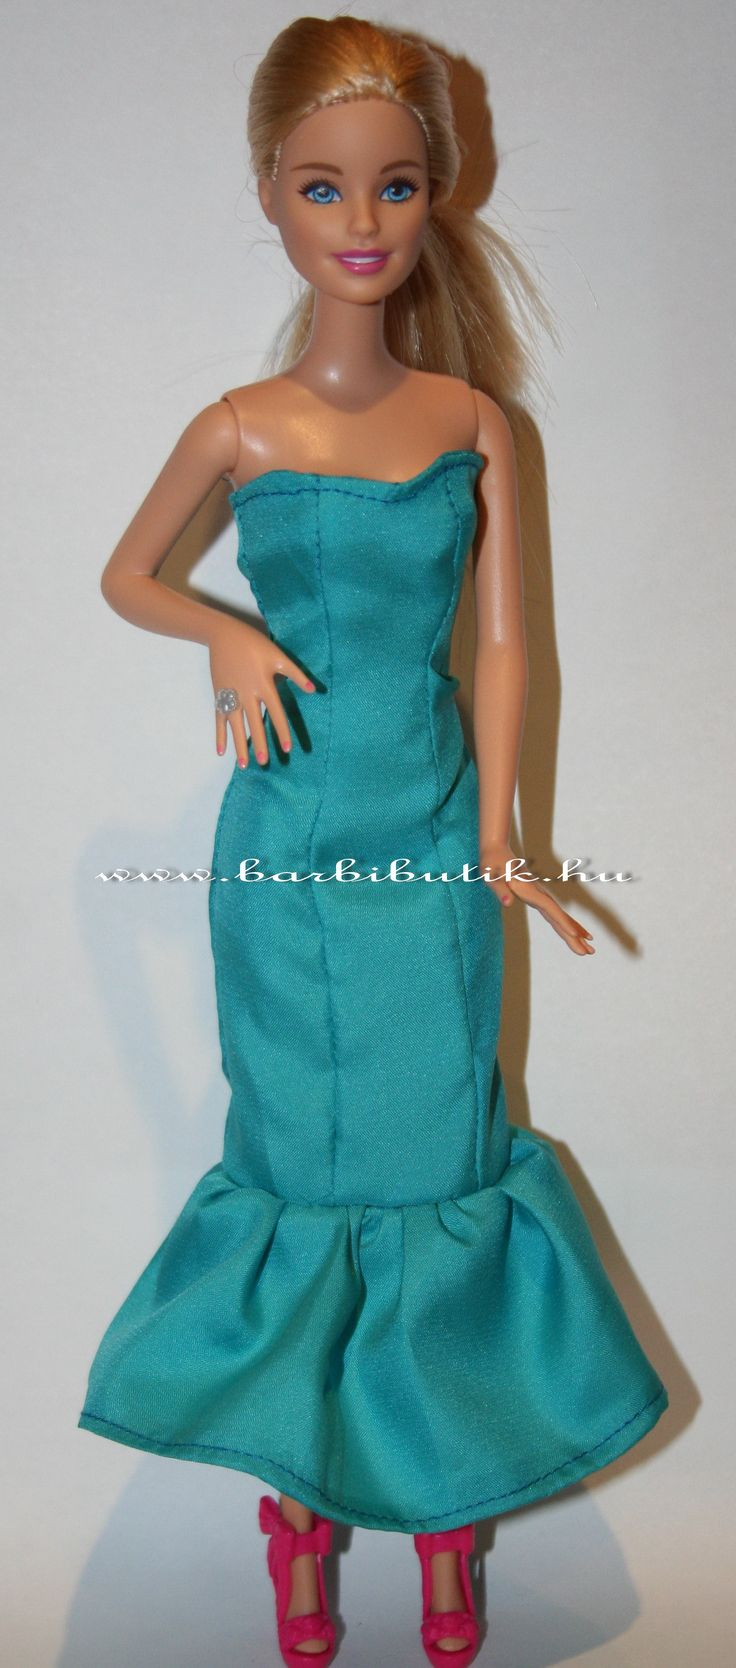 Türkiz barbie estélyi. / Barbie evening dress.